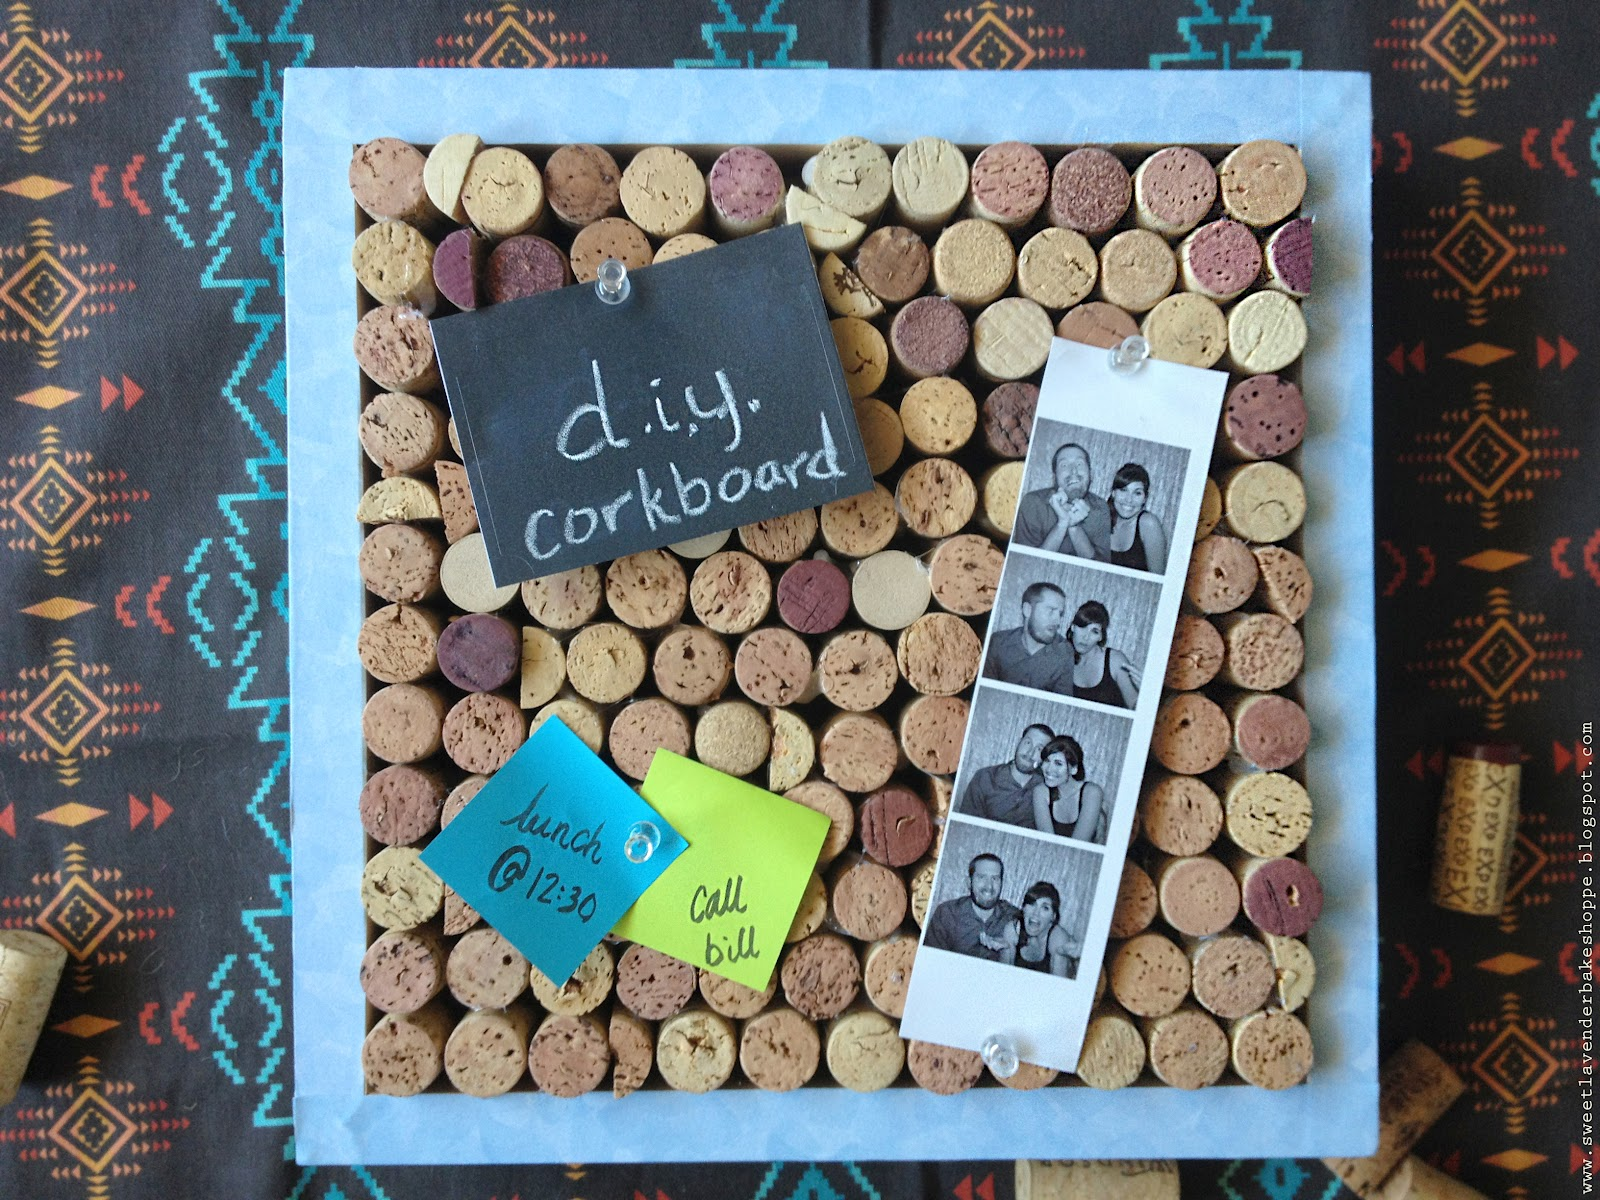 Sweet lavender bake shoppe d i y wine cork cork board for Diy cork board